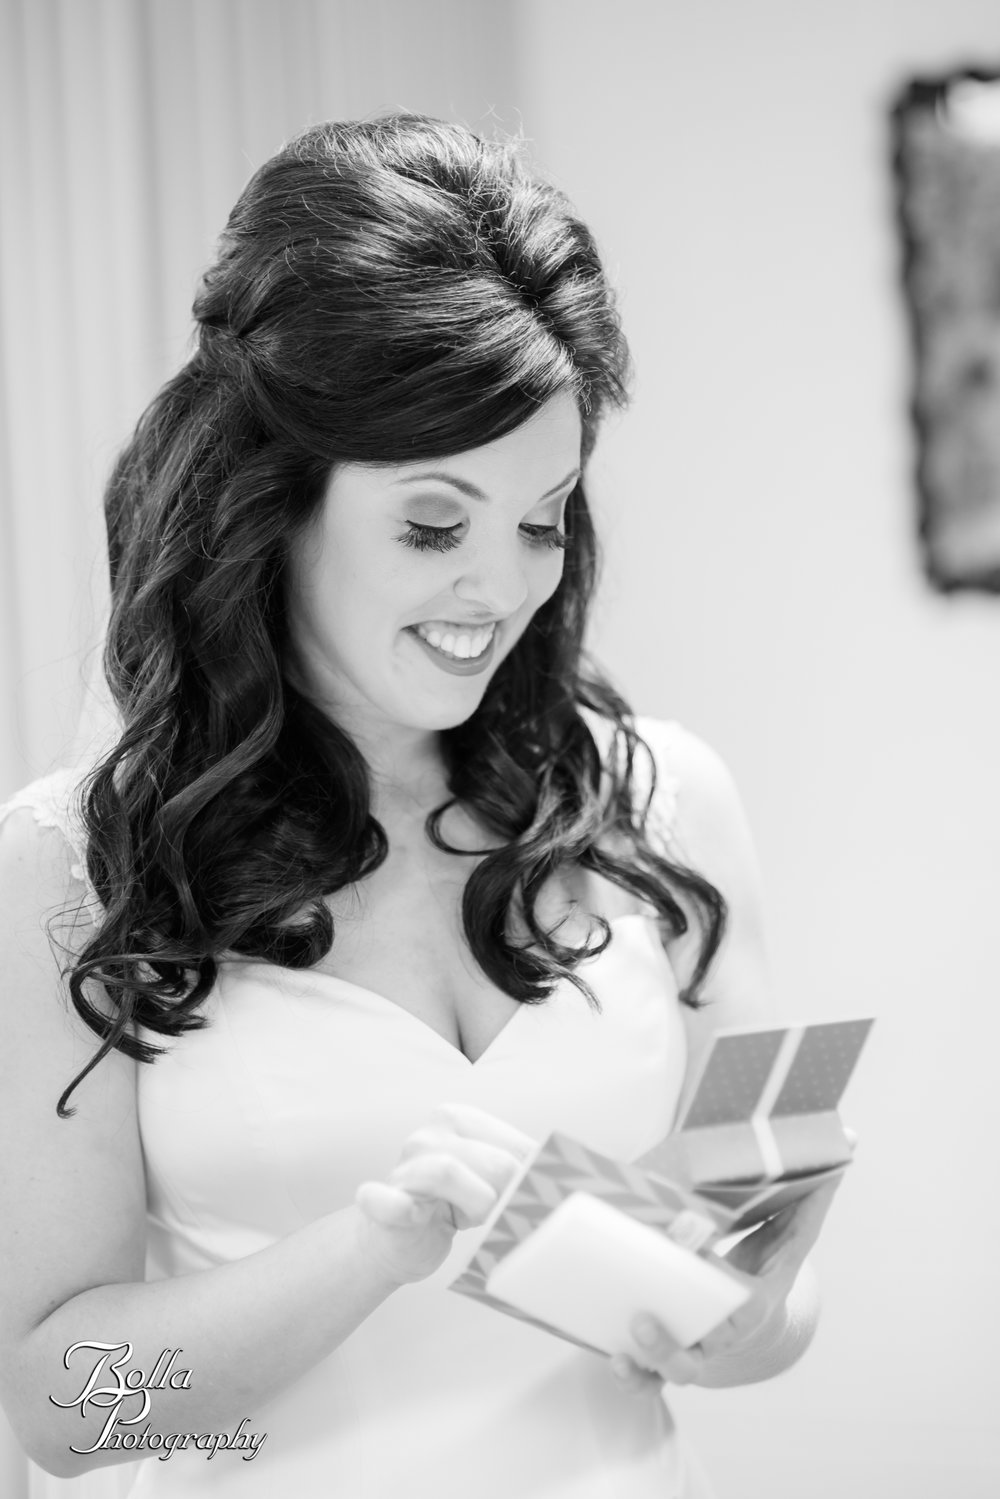 Bolla_photography_edwardsville_wedding_photographer_st_louis_weddings_Reilmann-0062.jpg